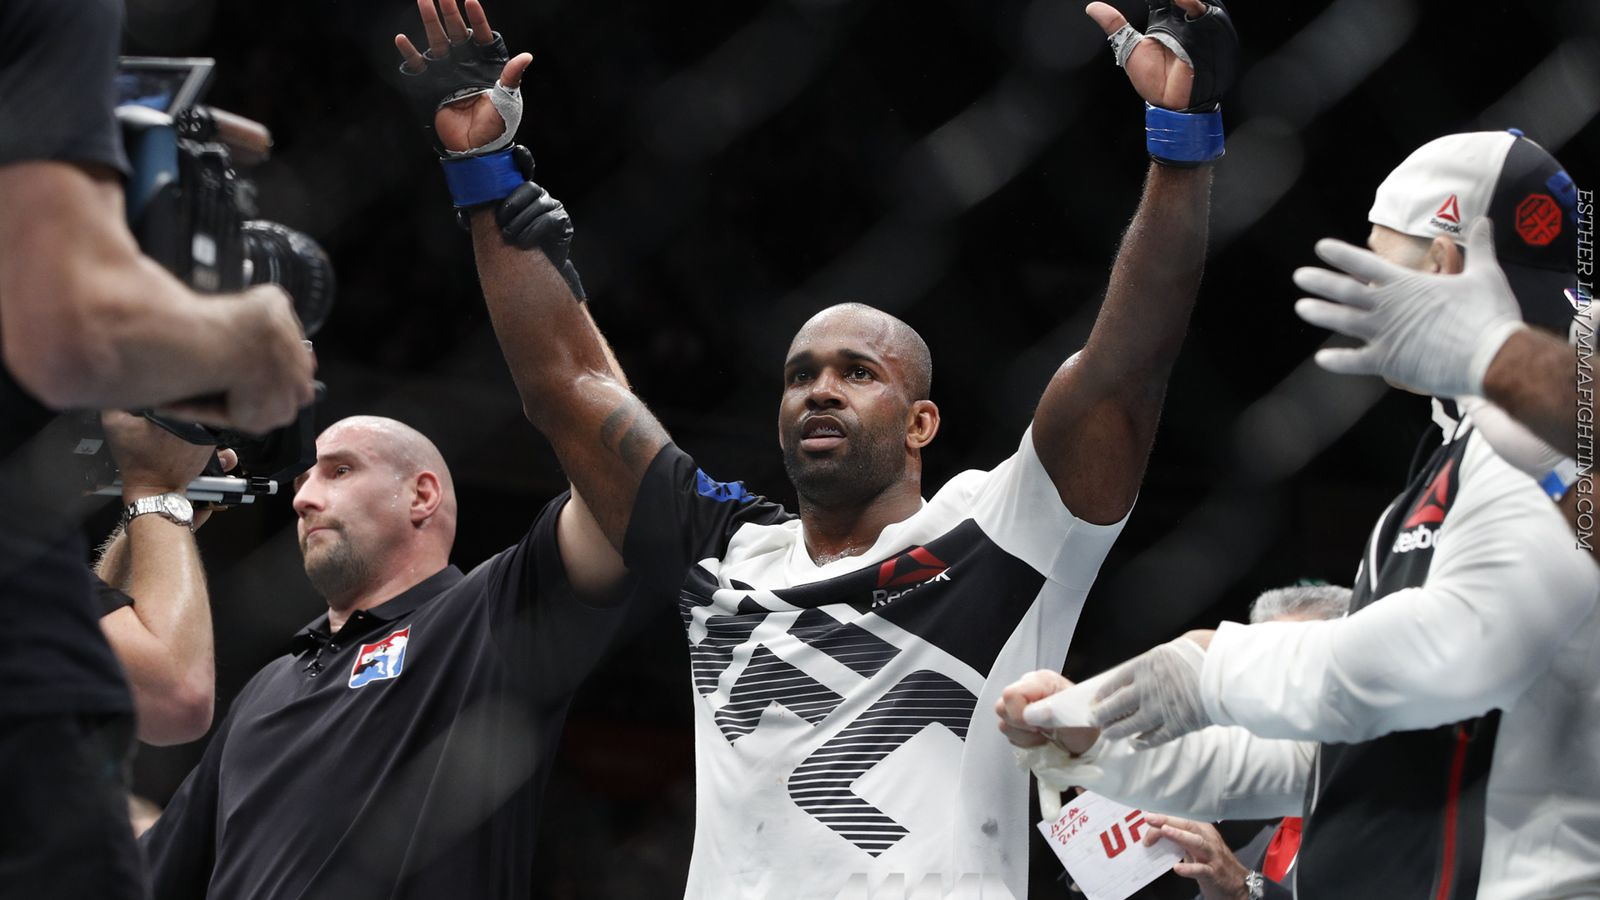 Jimi Manuwa vs. Corey Anderson elevated to UFC London main event